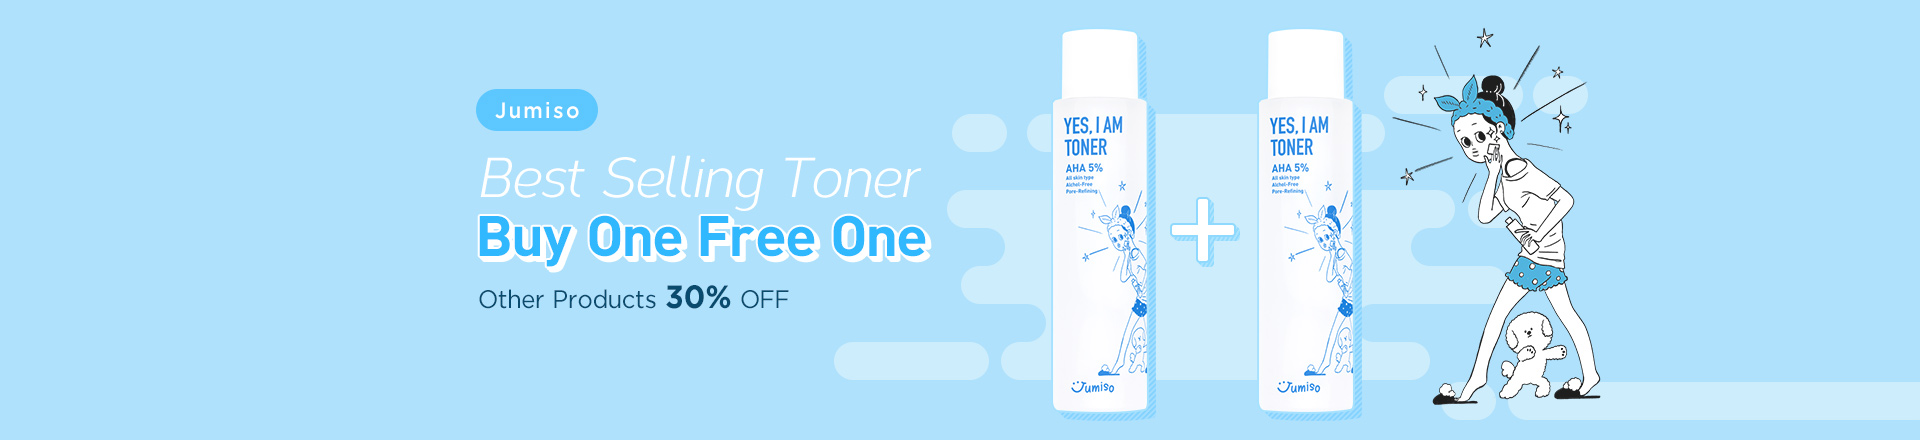 Best Selling Toner! Buy One Get One FREE!